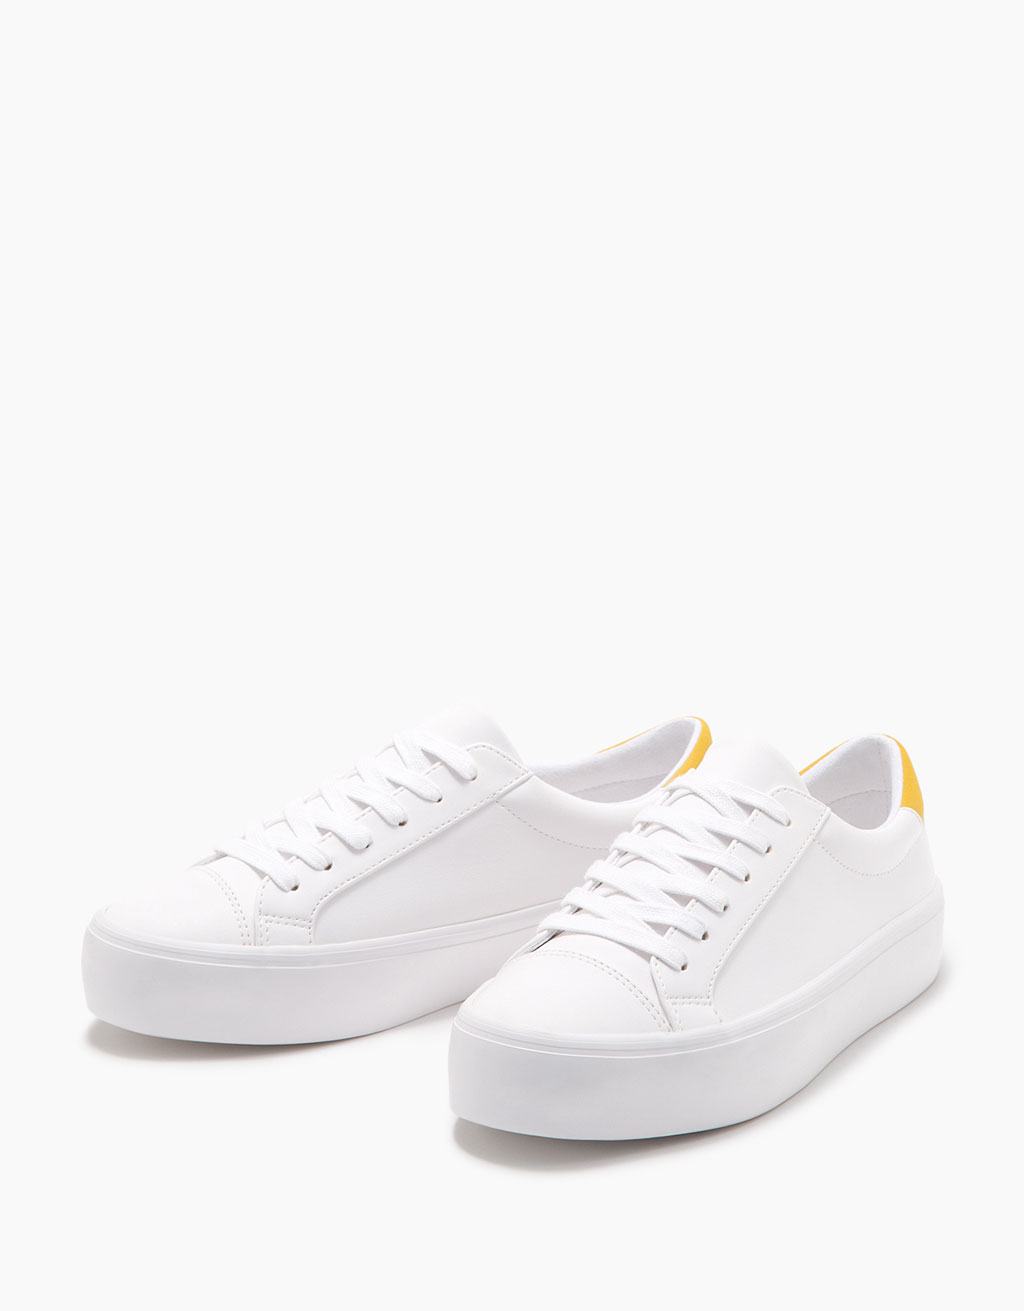 Lace-up platform sneakers with yellow detail